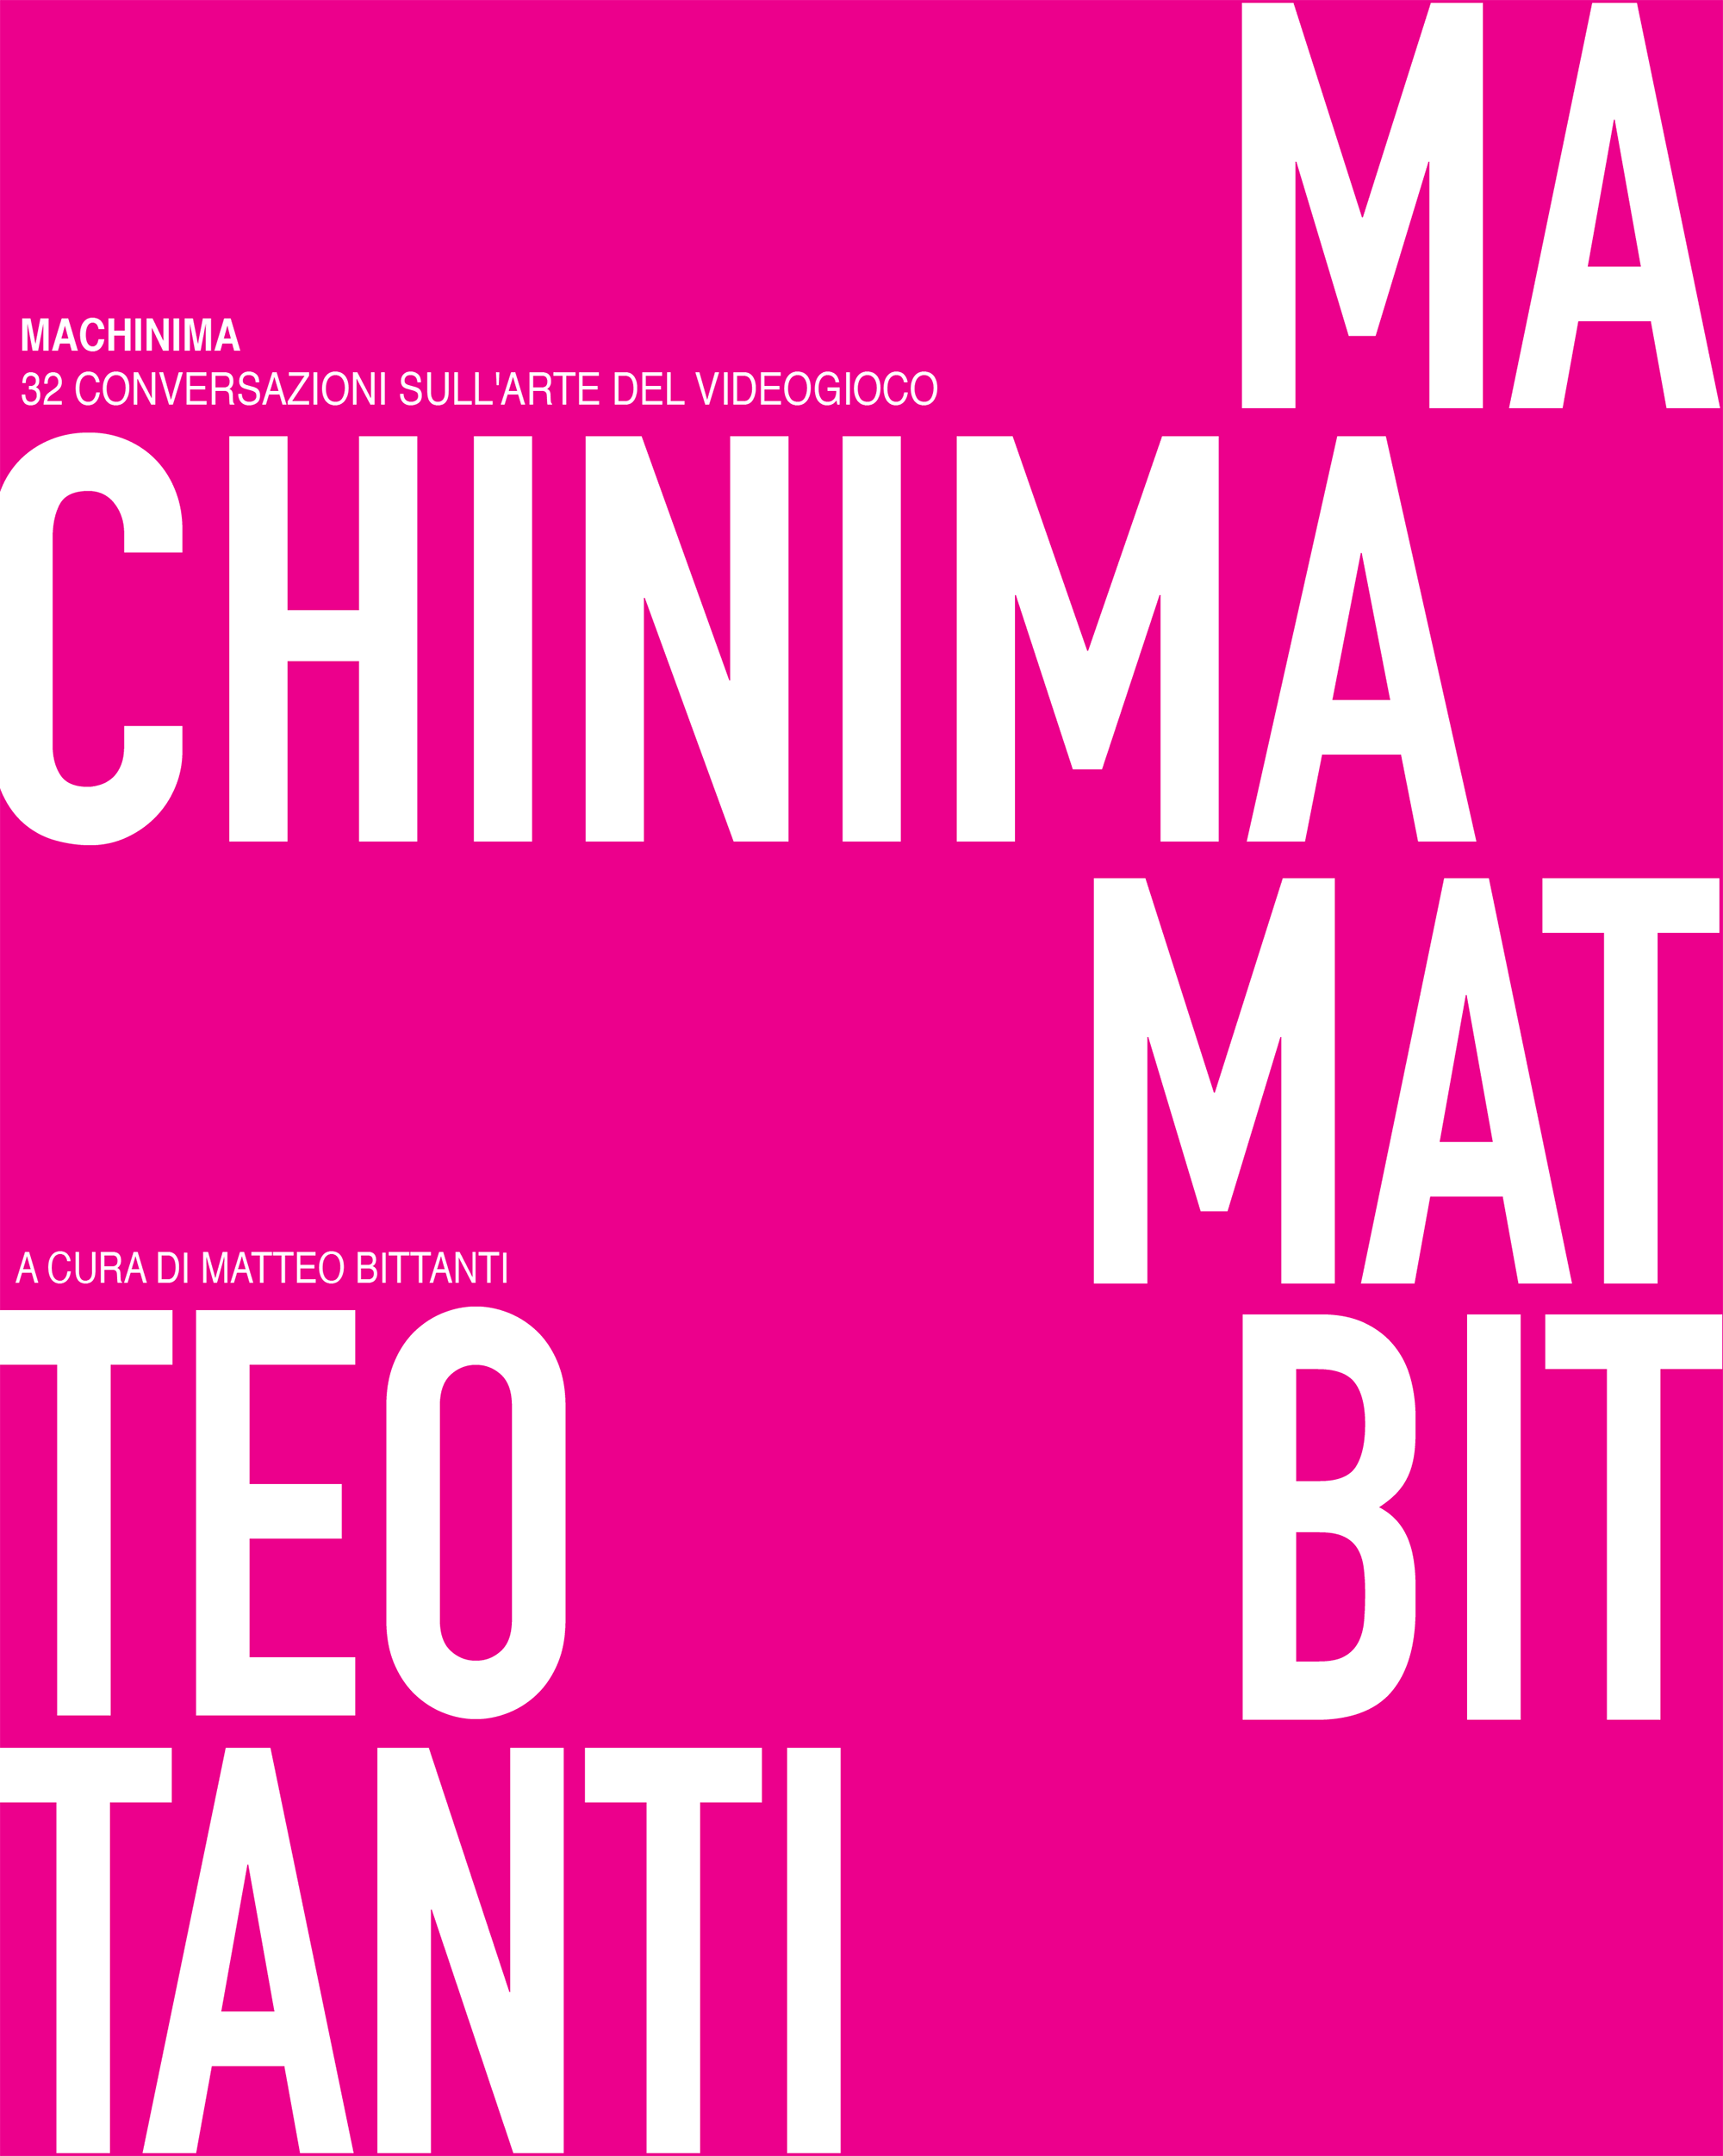 MACHINIMA_MATTEOBITTANTI